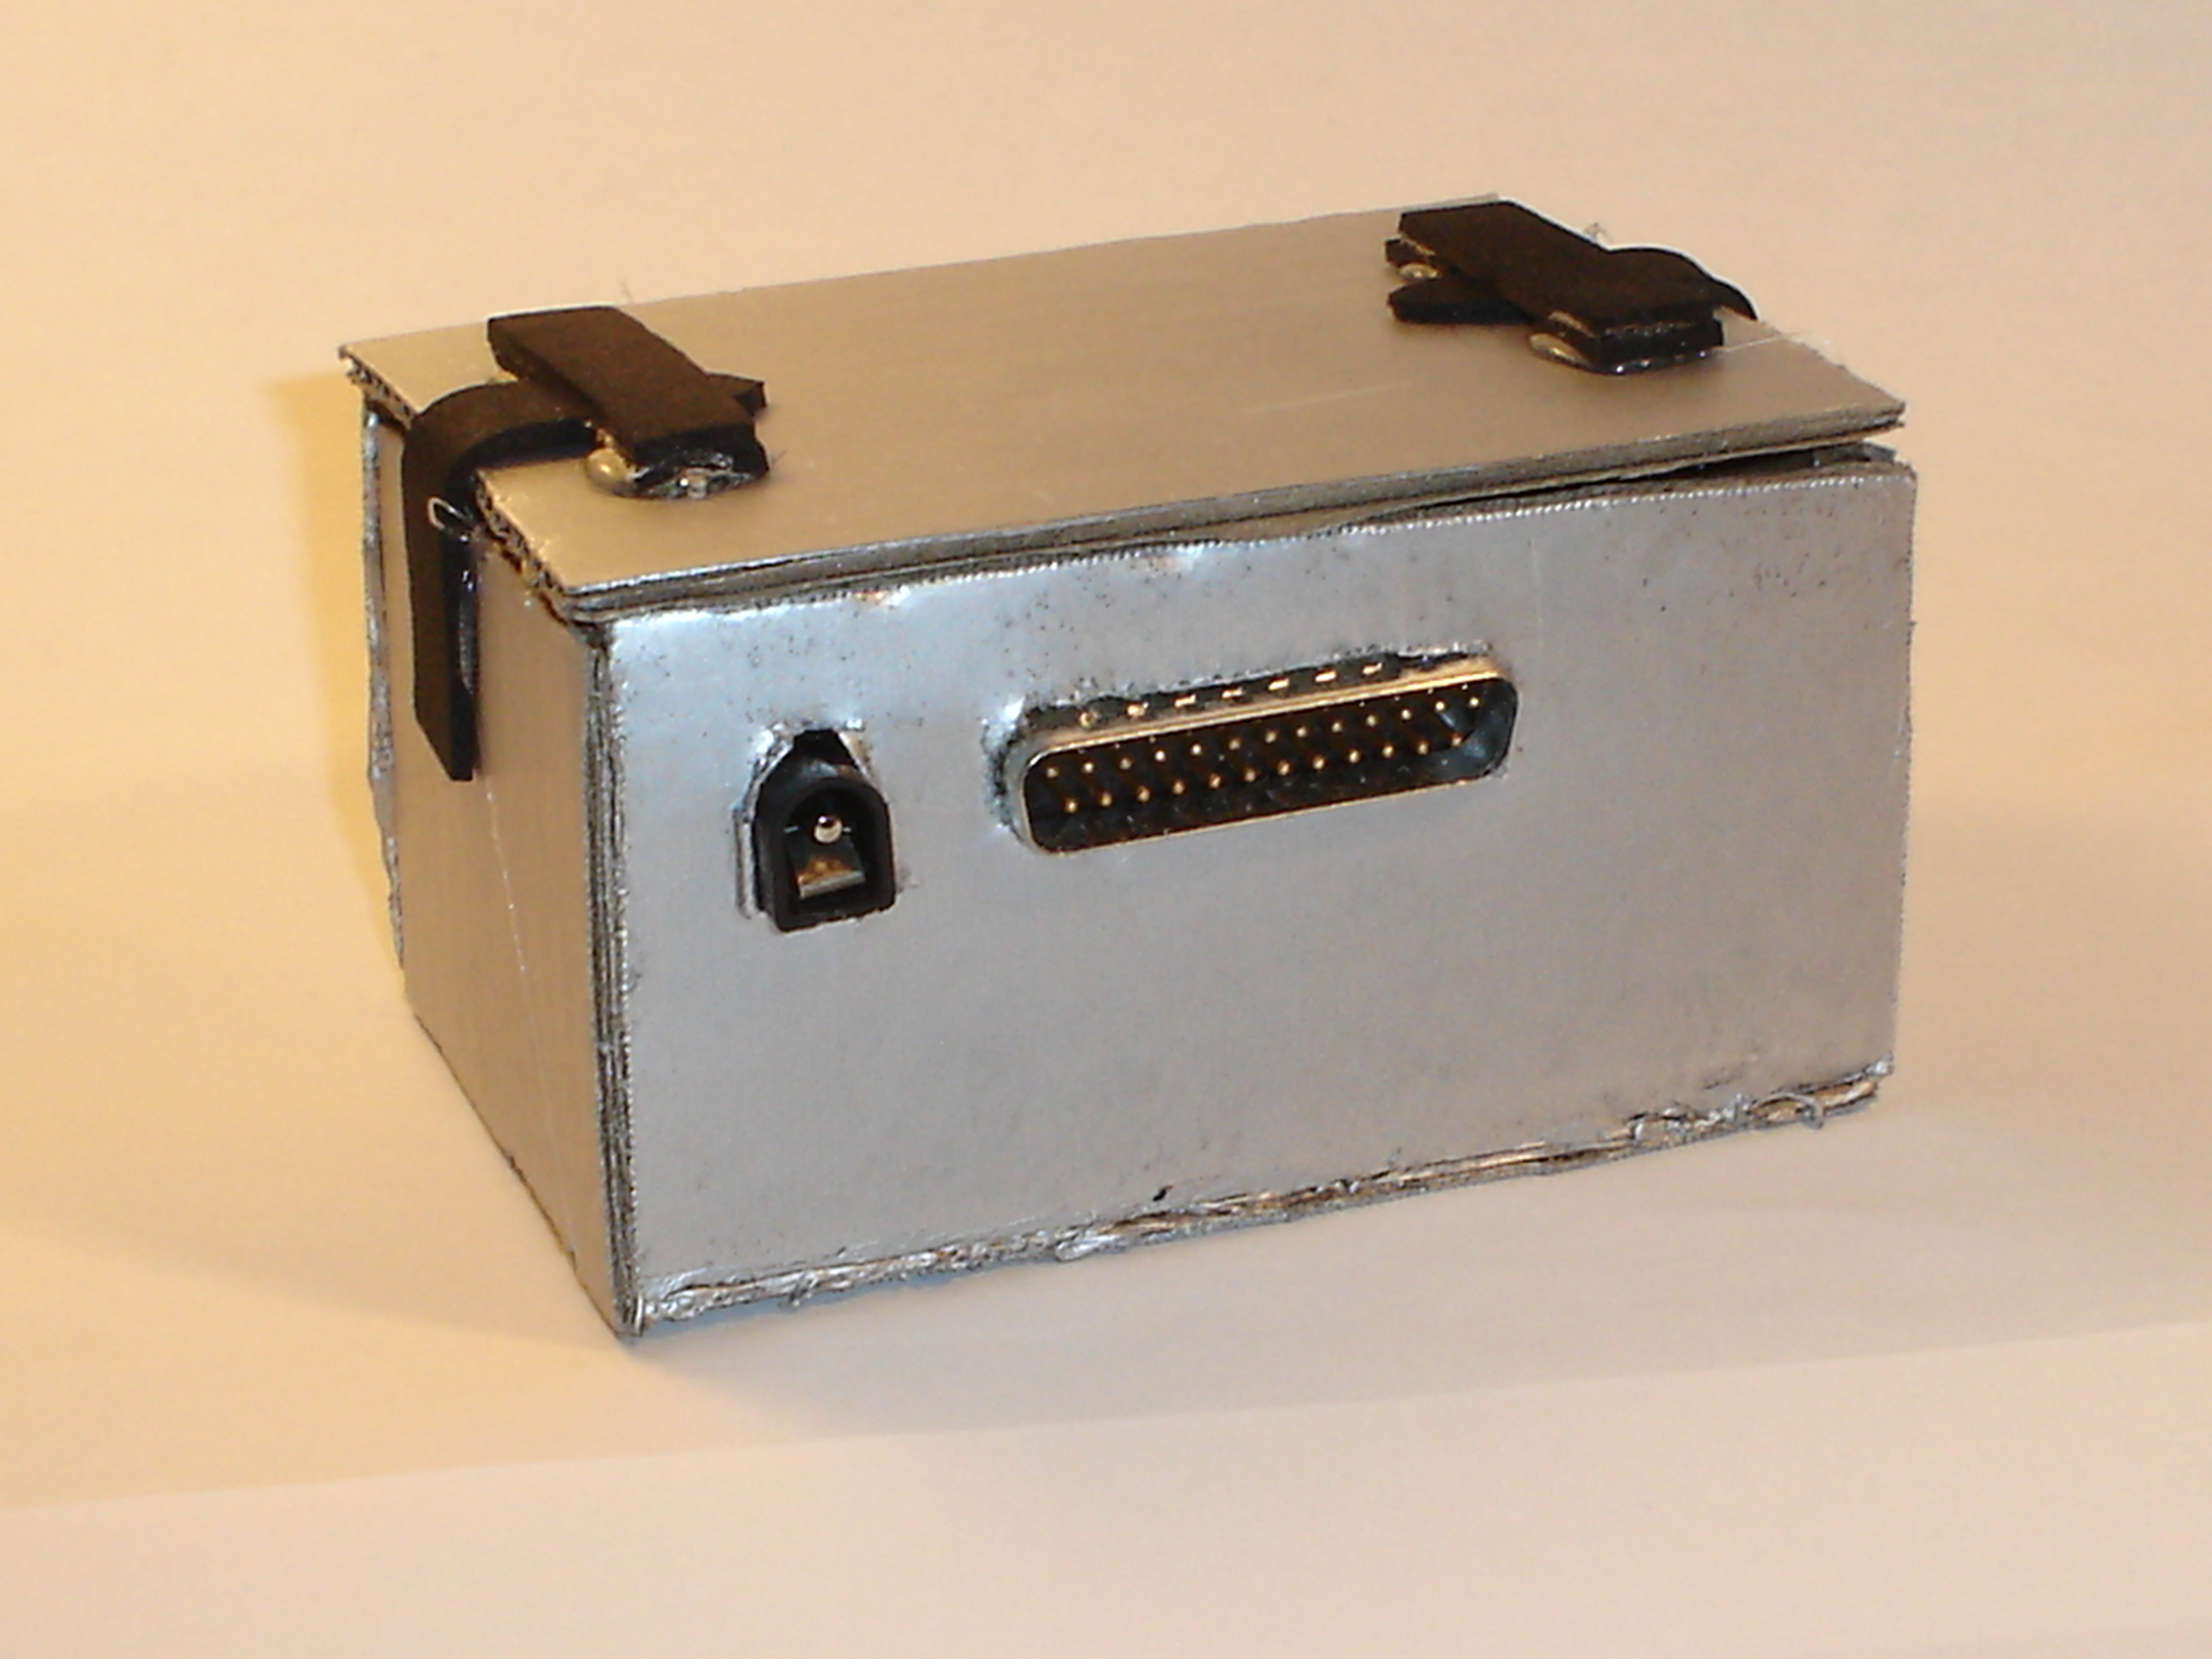 Picture of Easy to Build Stepper Controller From Recycled Materials